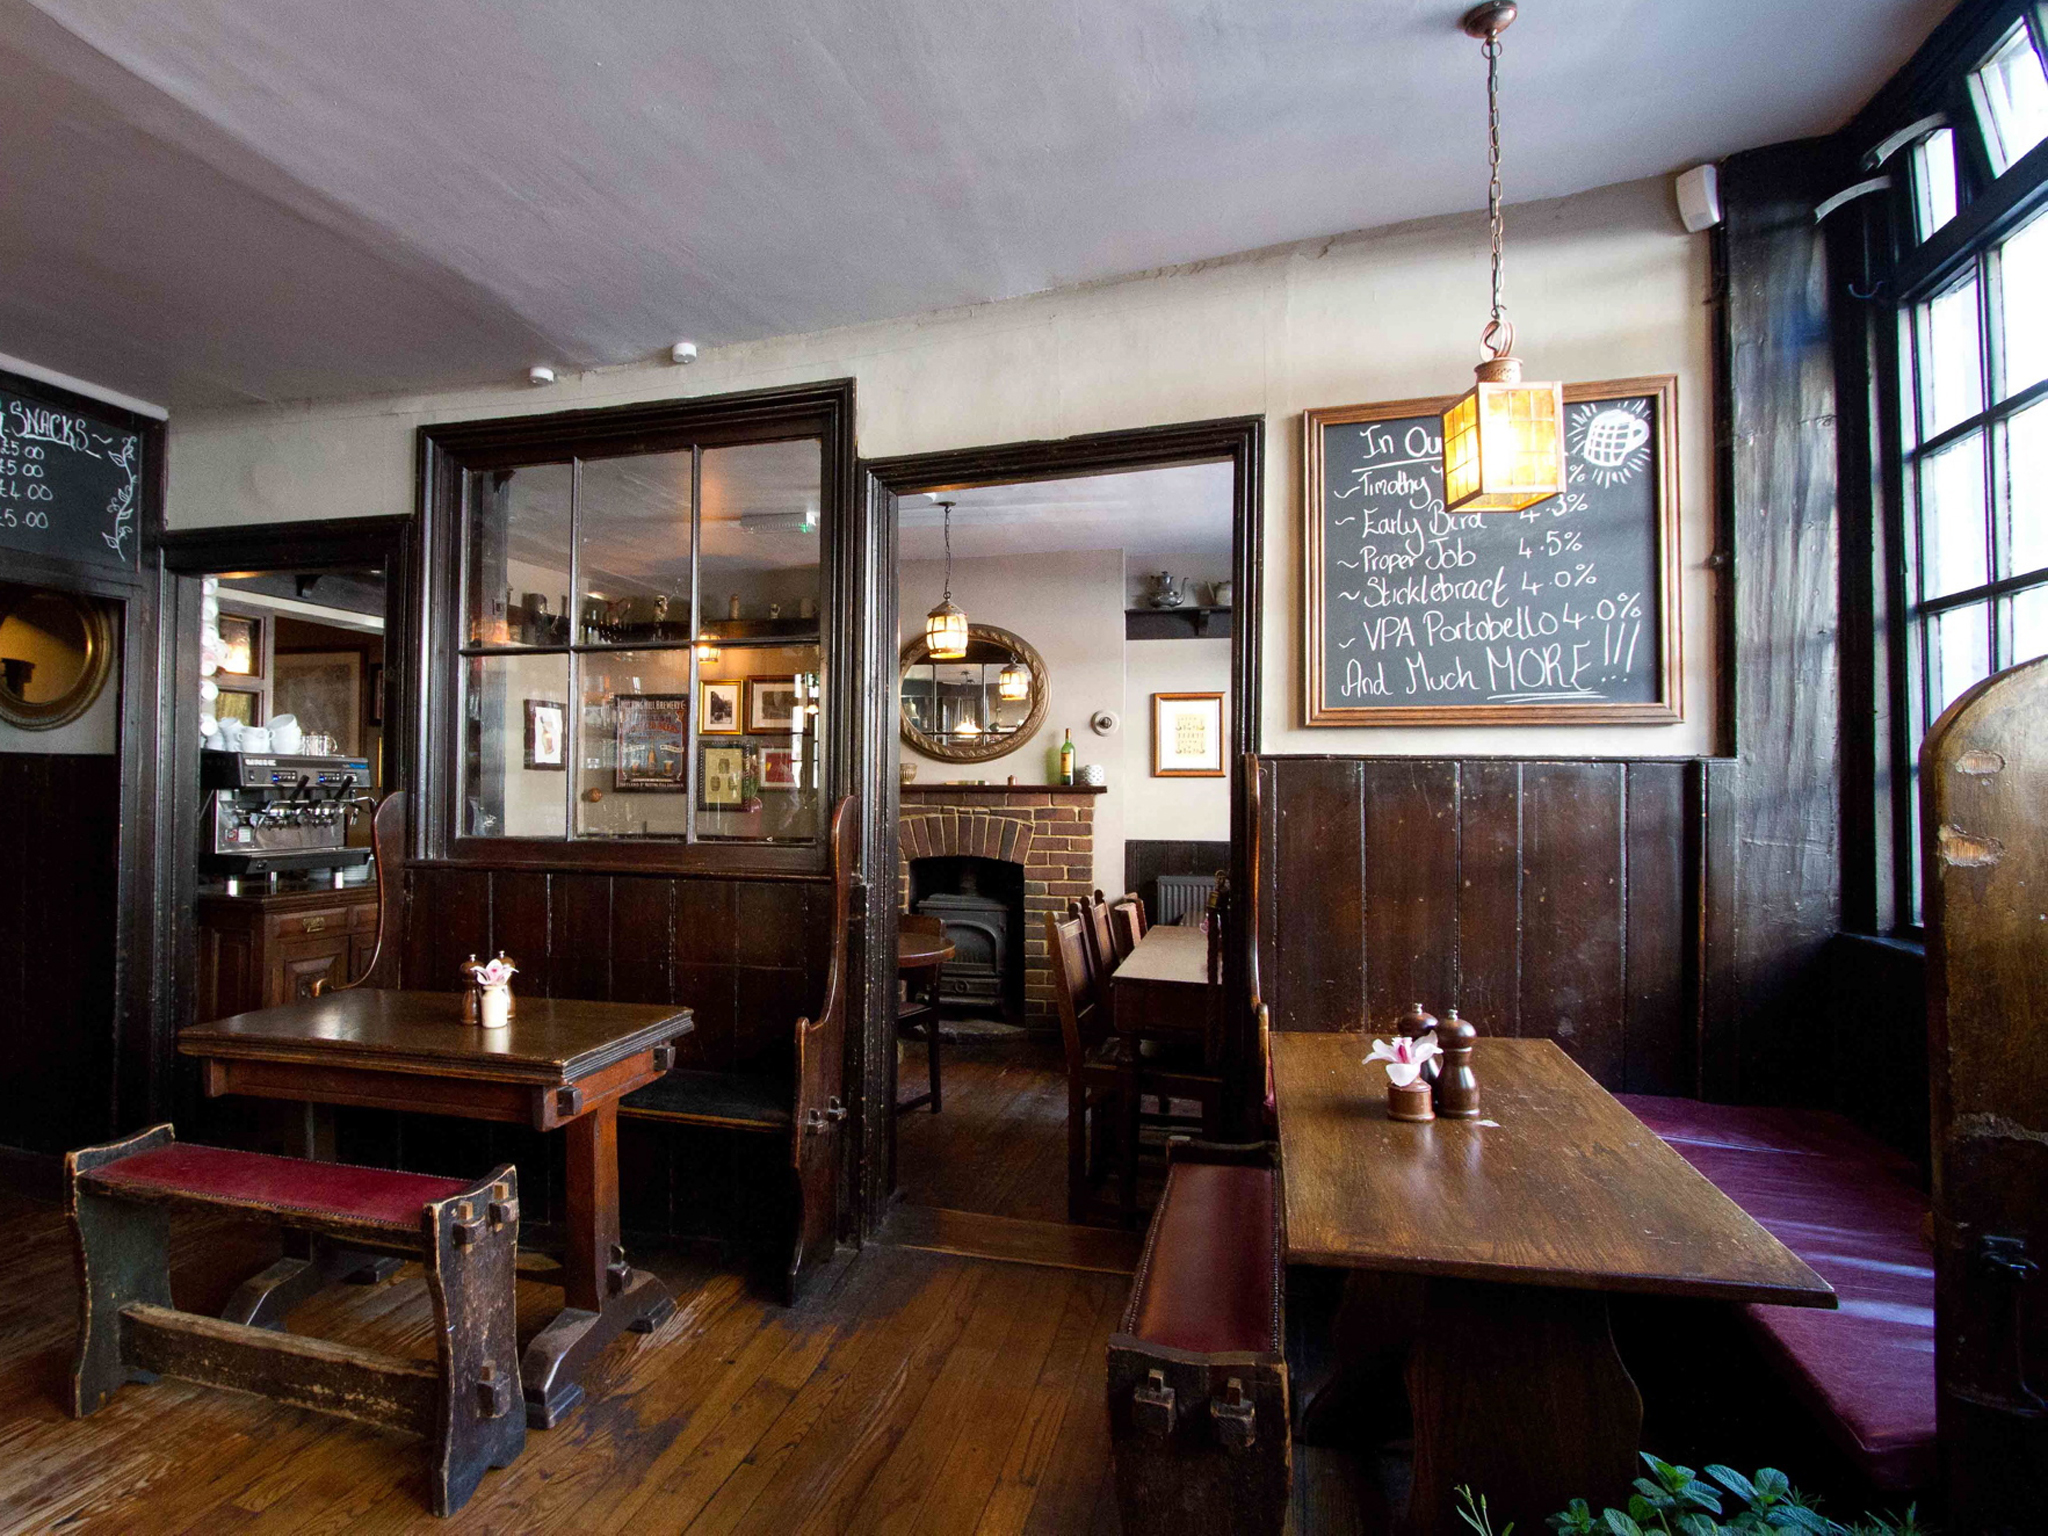 The 100 best bars and pubs in London - Windsor Castle, Kensington